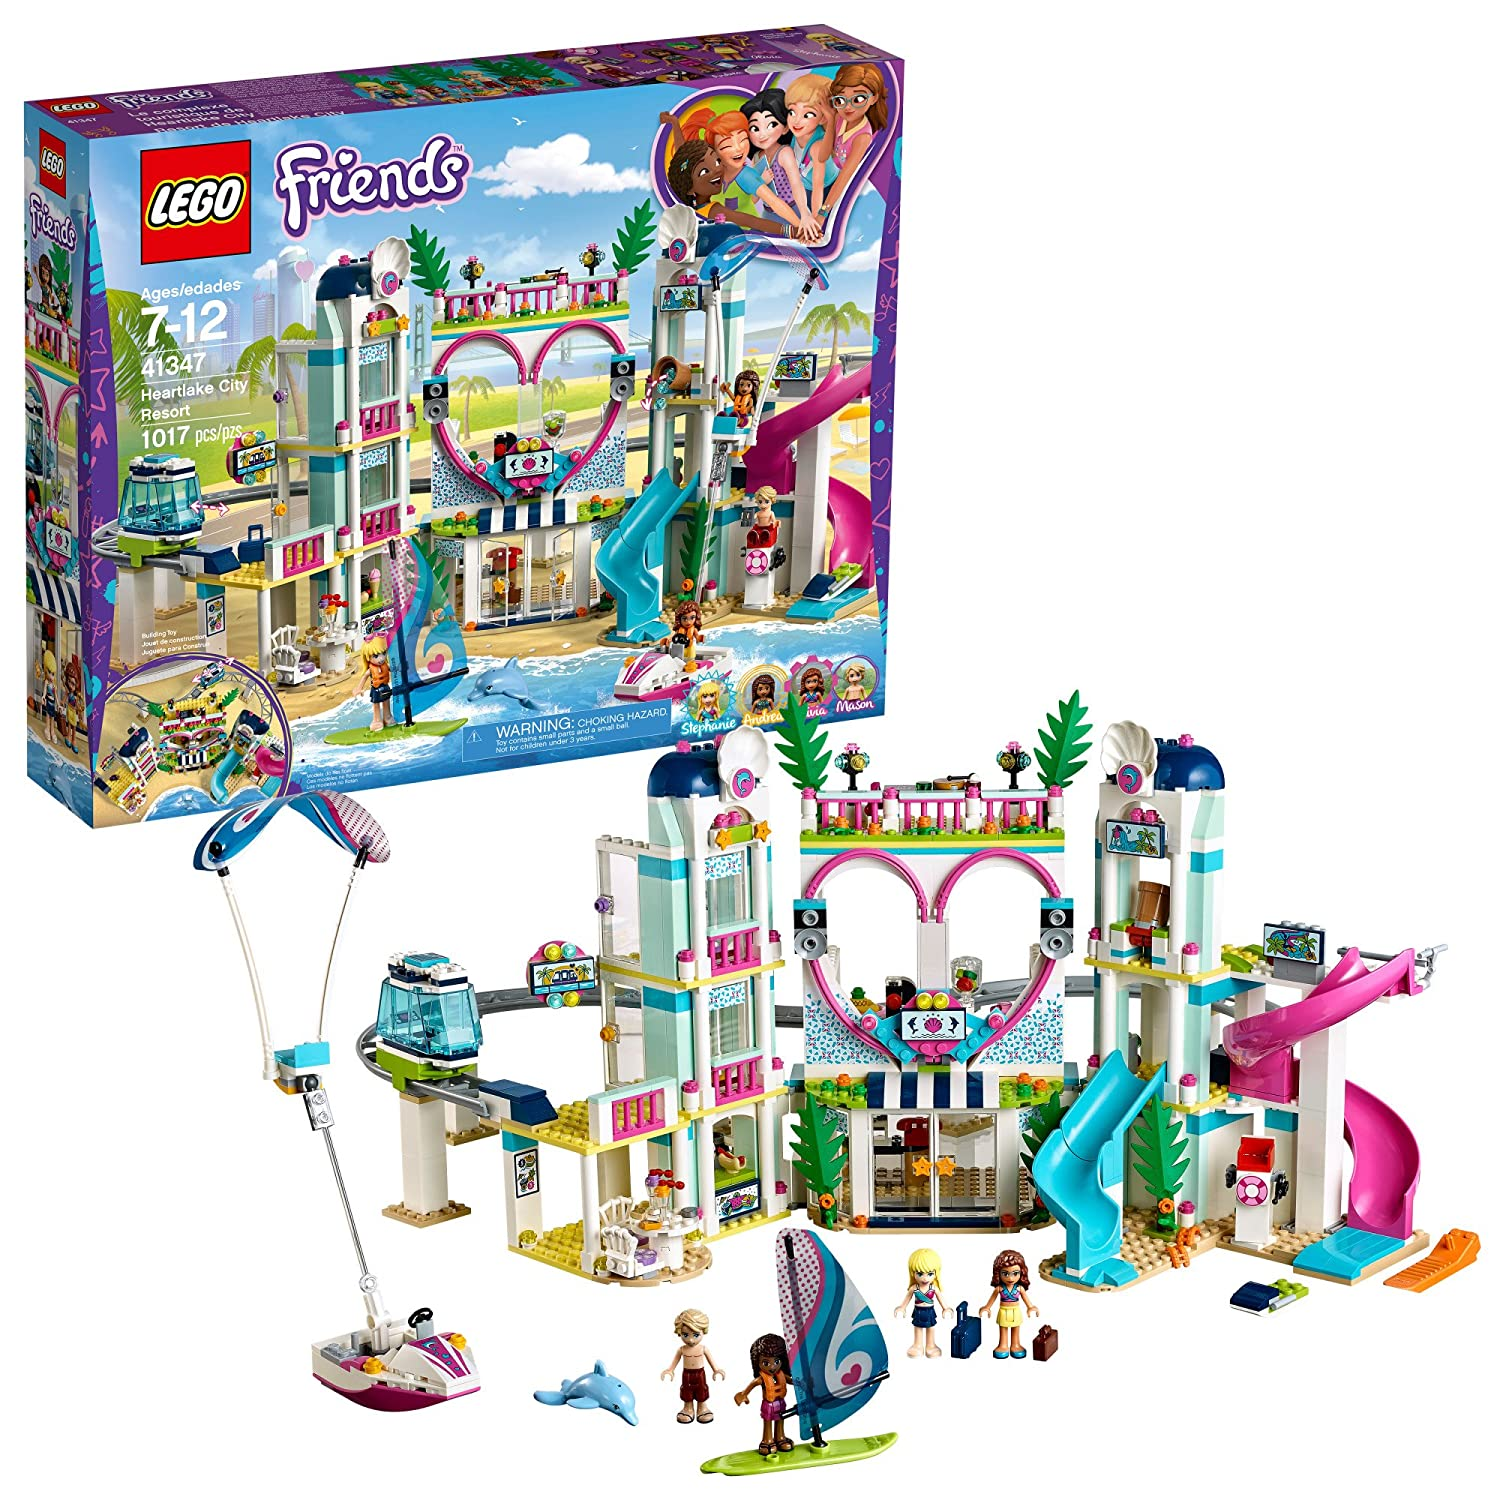 LEGO Friends Heartlake City Resort 41347 Building Kit (1017 Piece) 6213498